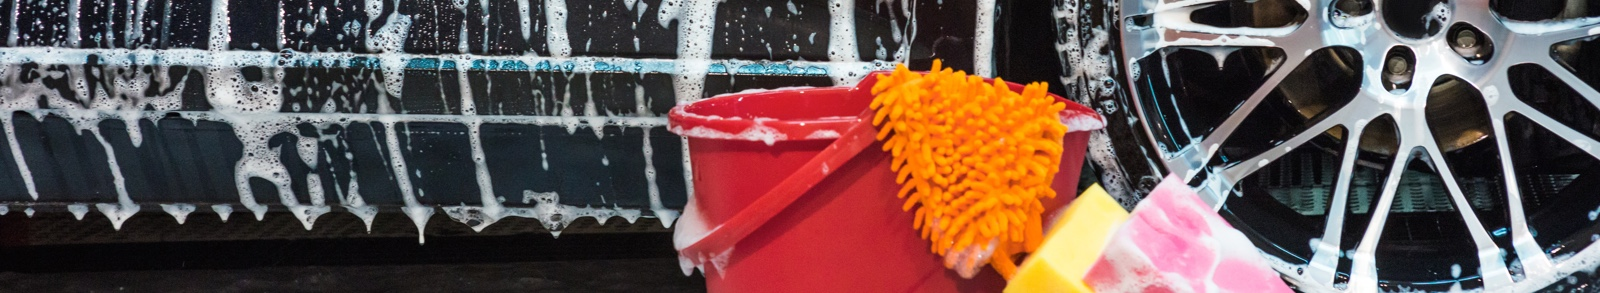 Car with soap suds and a red bucket with washing equipment